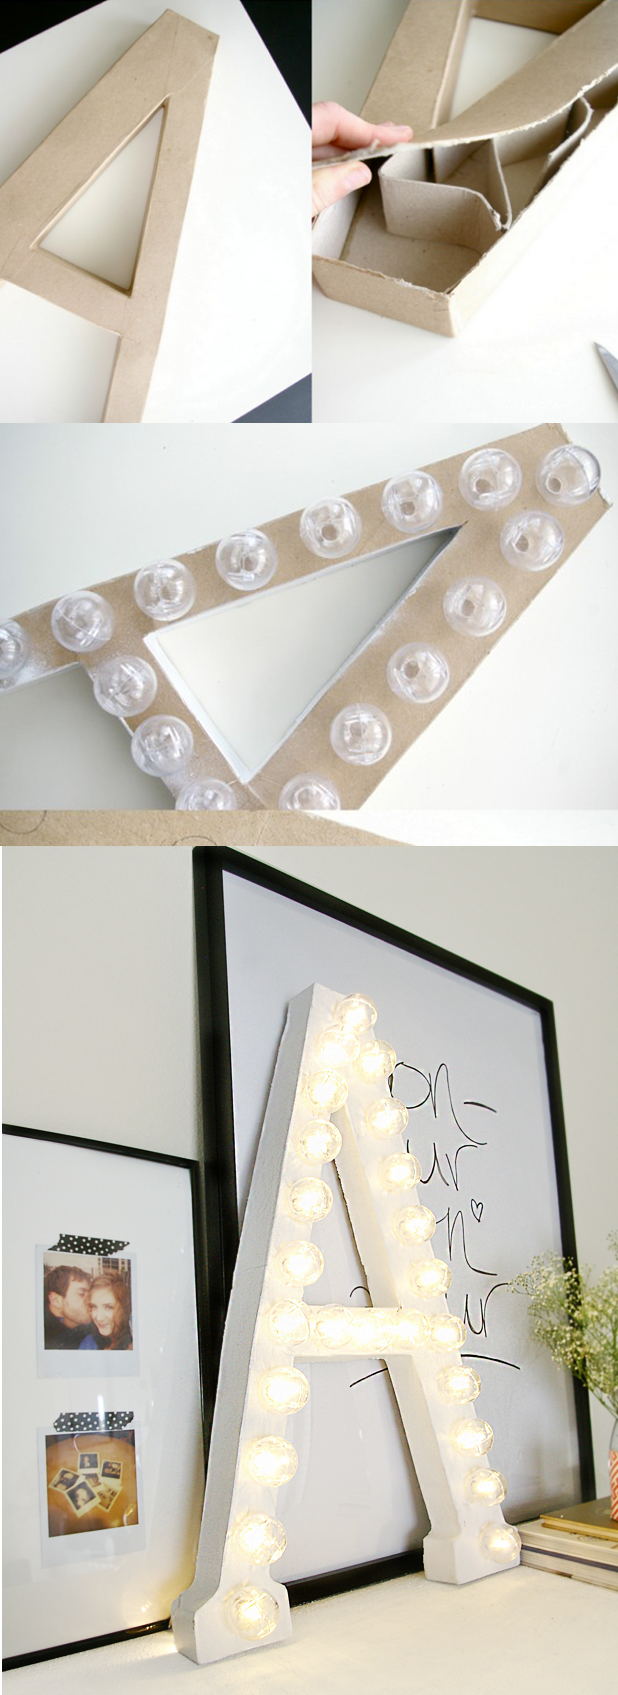 Diy marquee letters led christmas light strand white pingpong full hd wedding letters of iphone pics